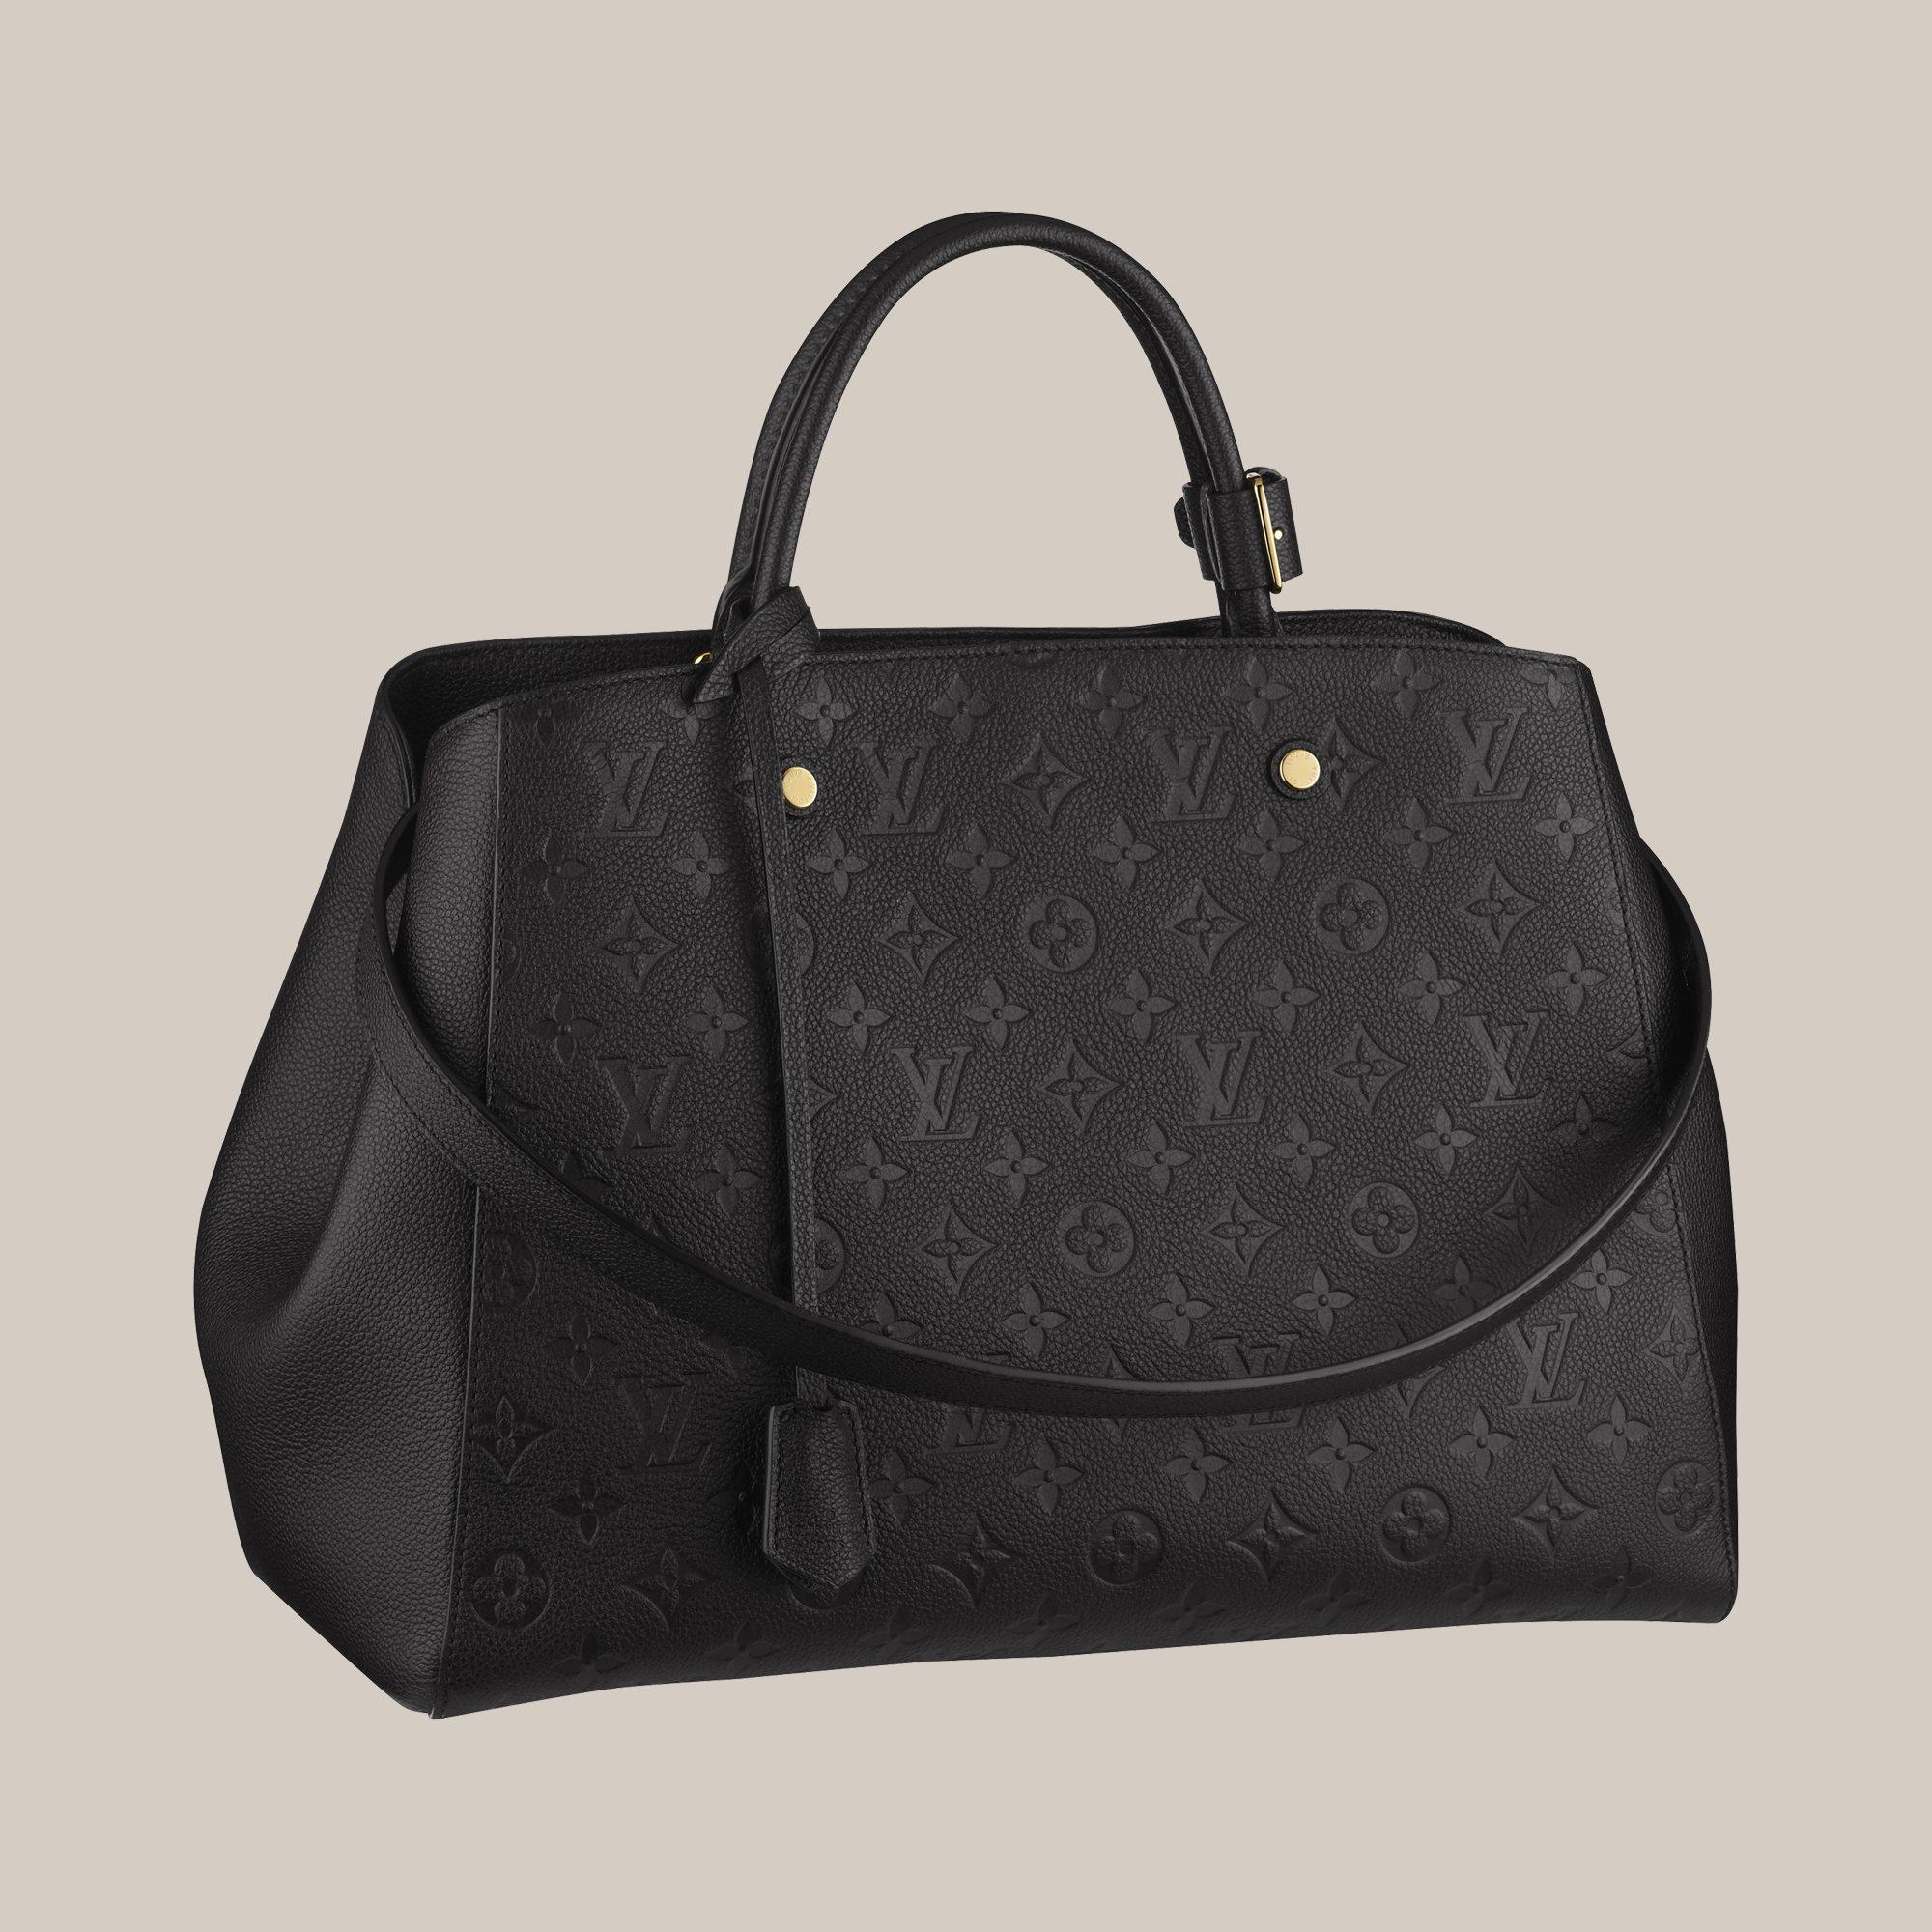 louis vuitton montaigne gm review